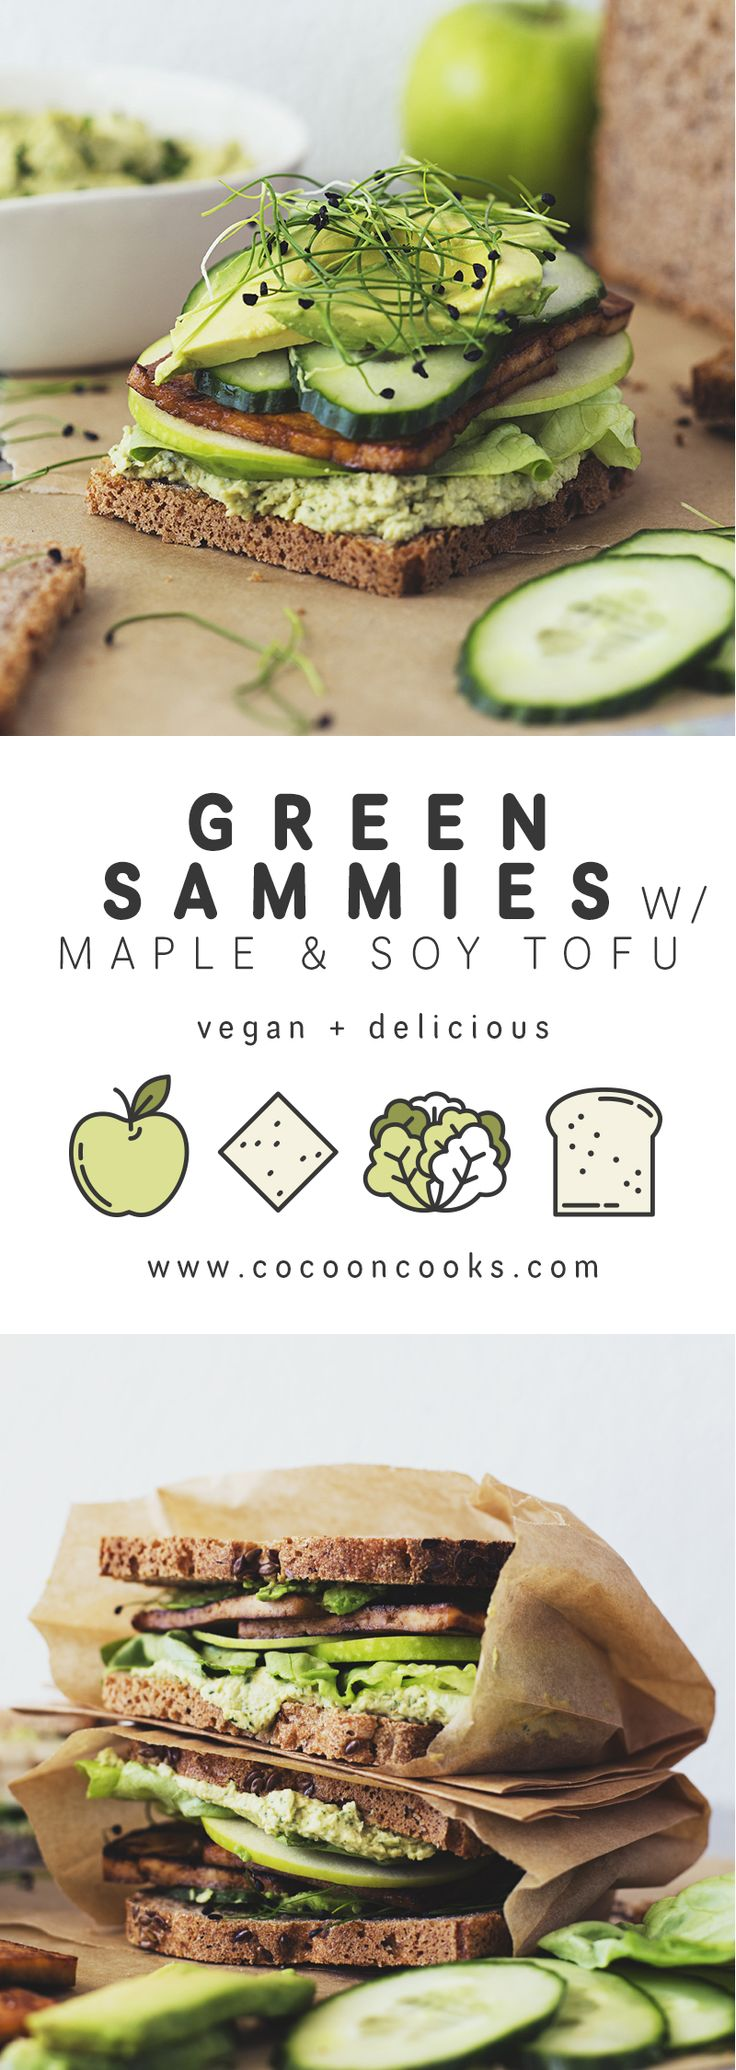 Green Sandwiches with Herb Hummus and Maple & Soy Crispy Tofu! Easy, healthy and delicious. #vegan #recipe